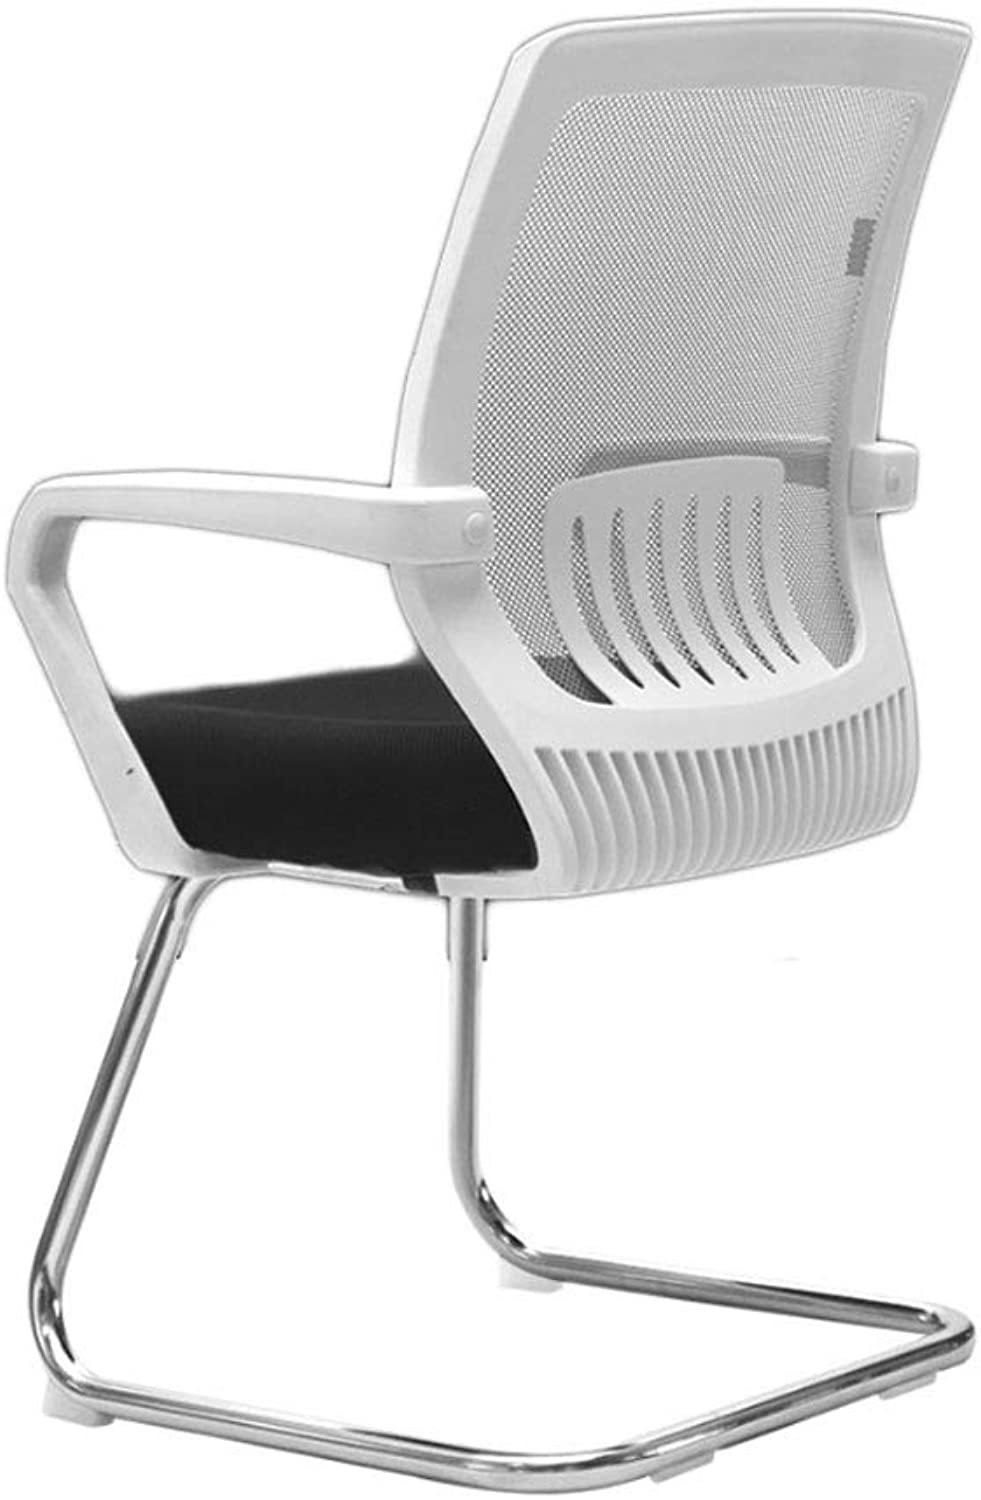 Computer Chair Home Net Chair Bow Staff Chair Lift Chair Swivel Chair Modern Simple Office Chair (color   White, Size   90cm)